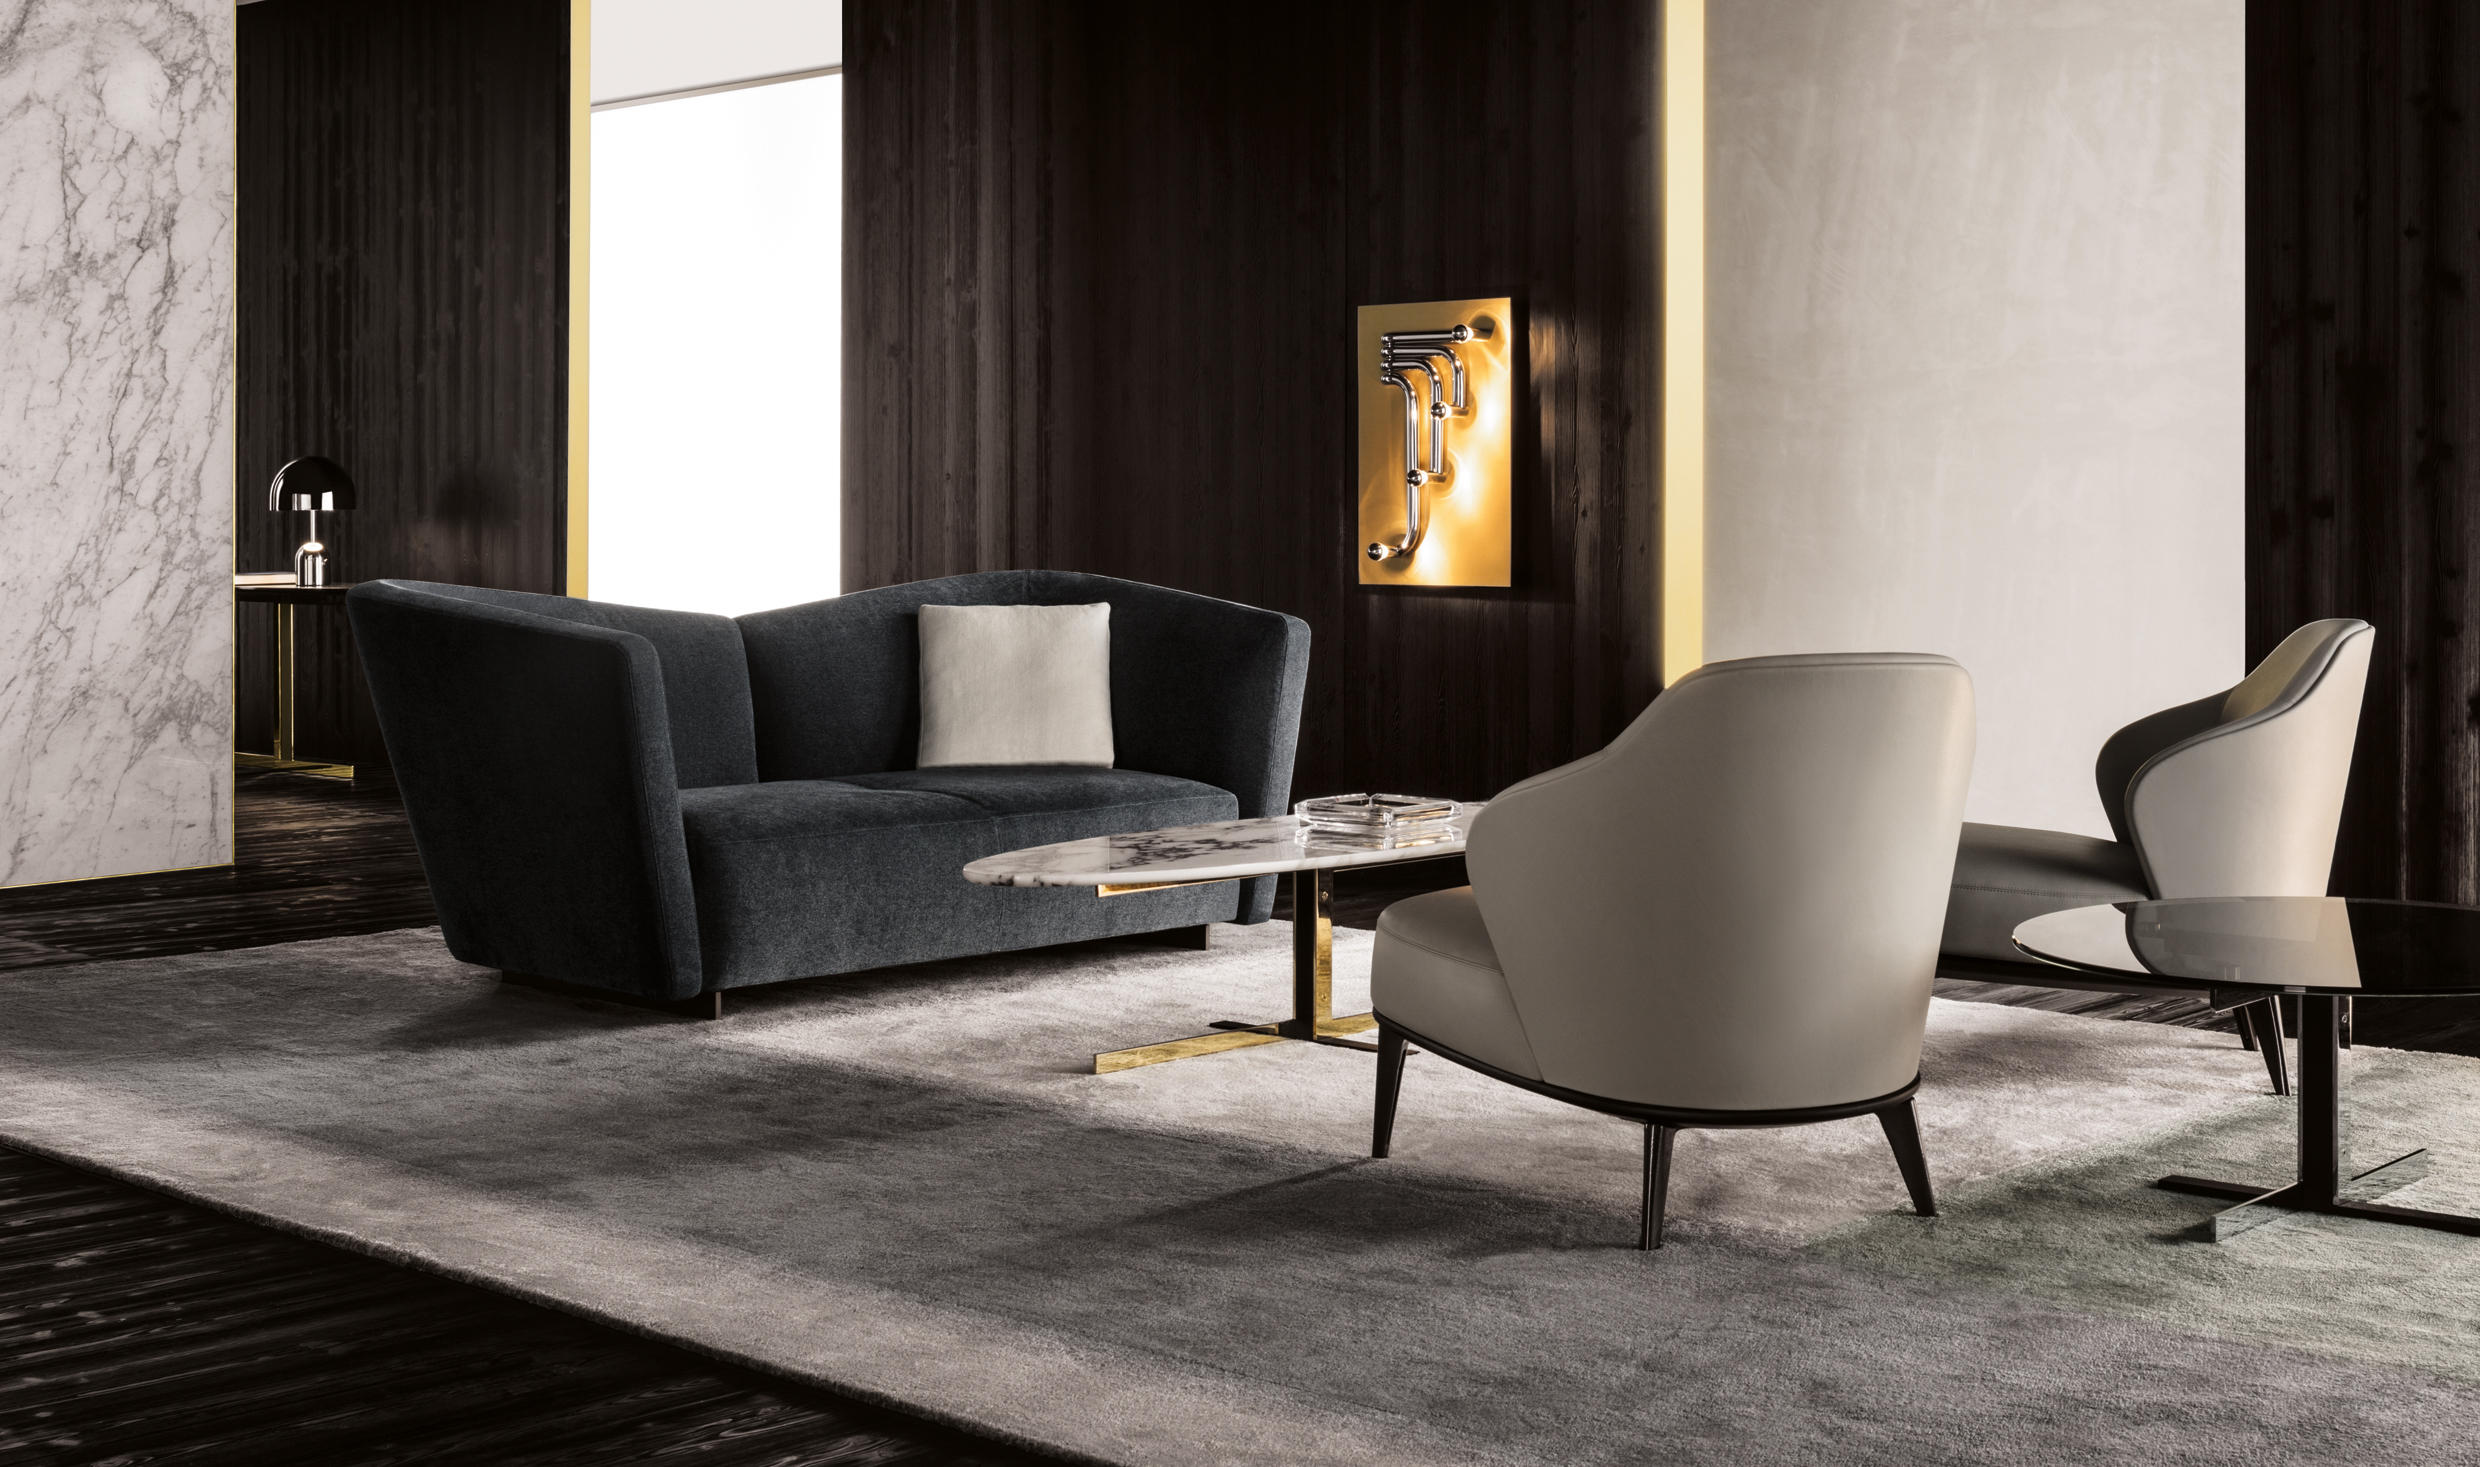 Lounge Seymour By Minotti ...